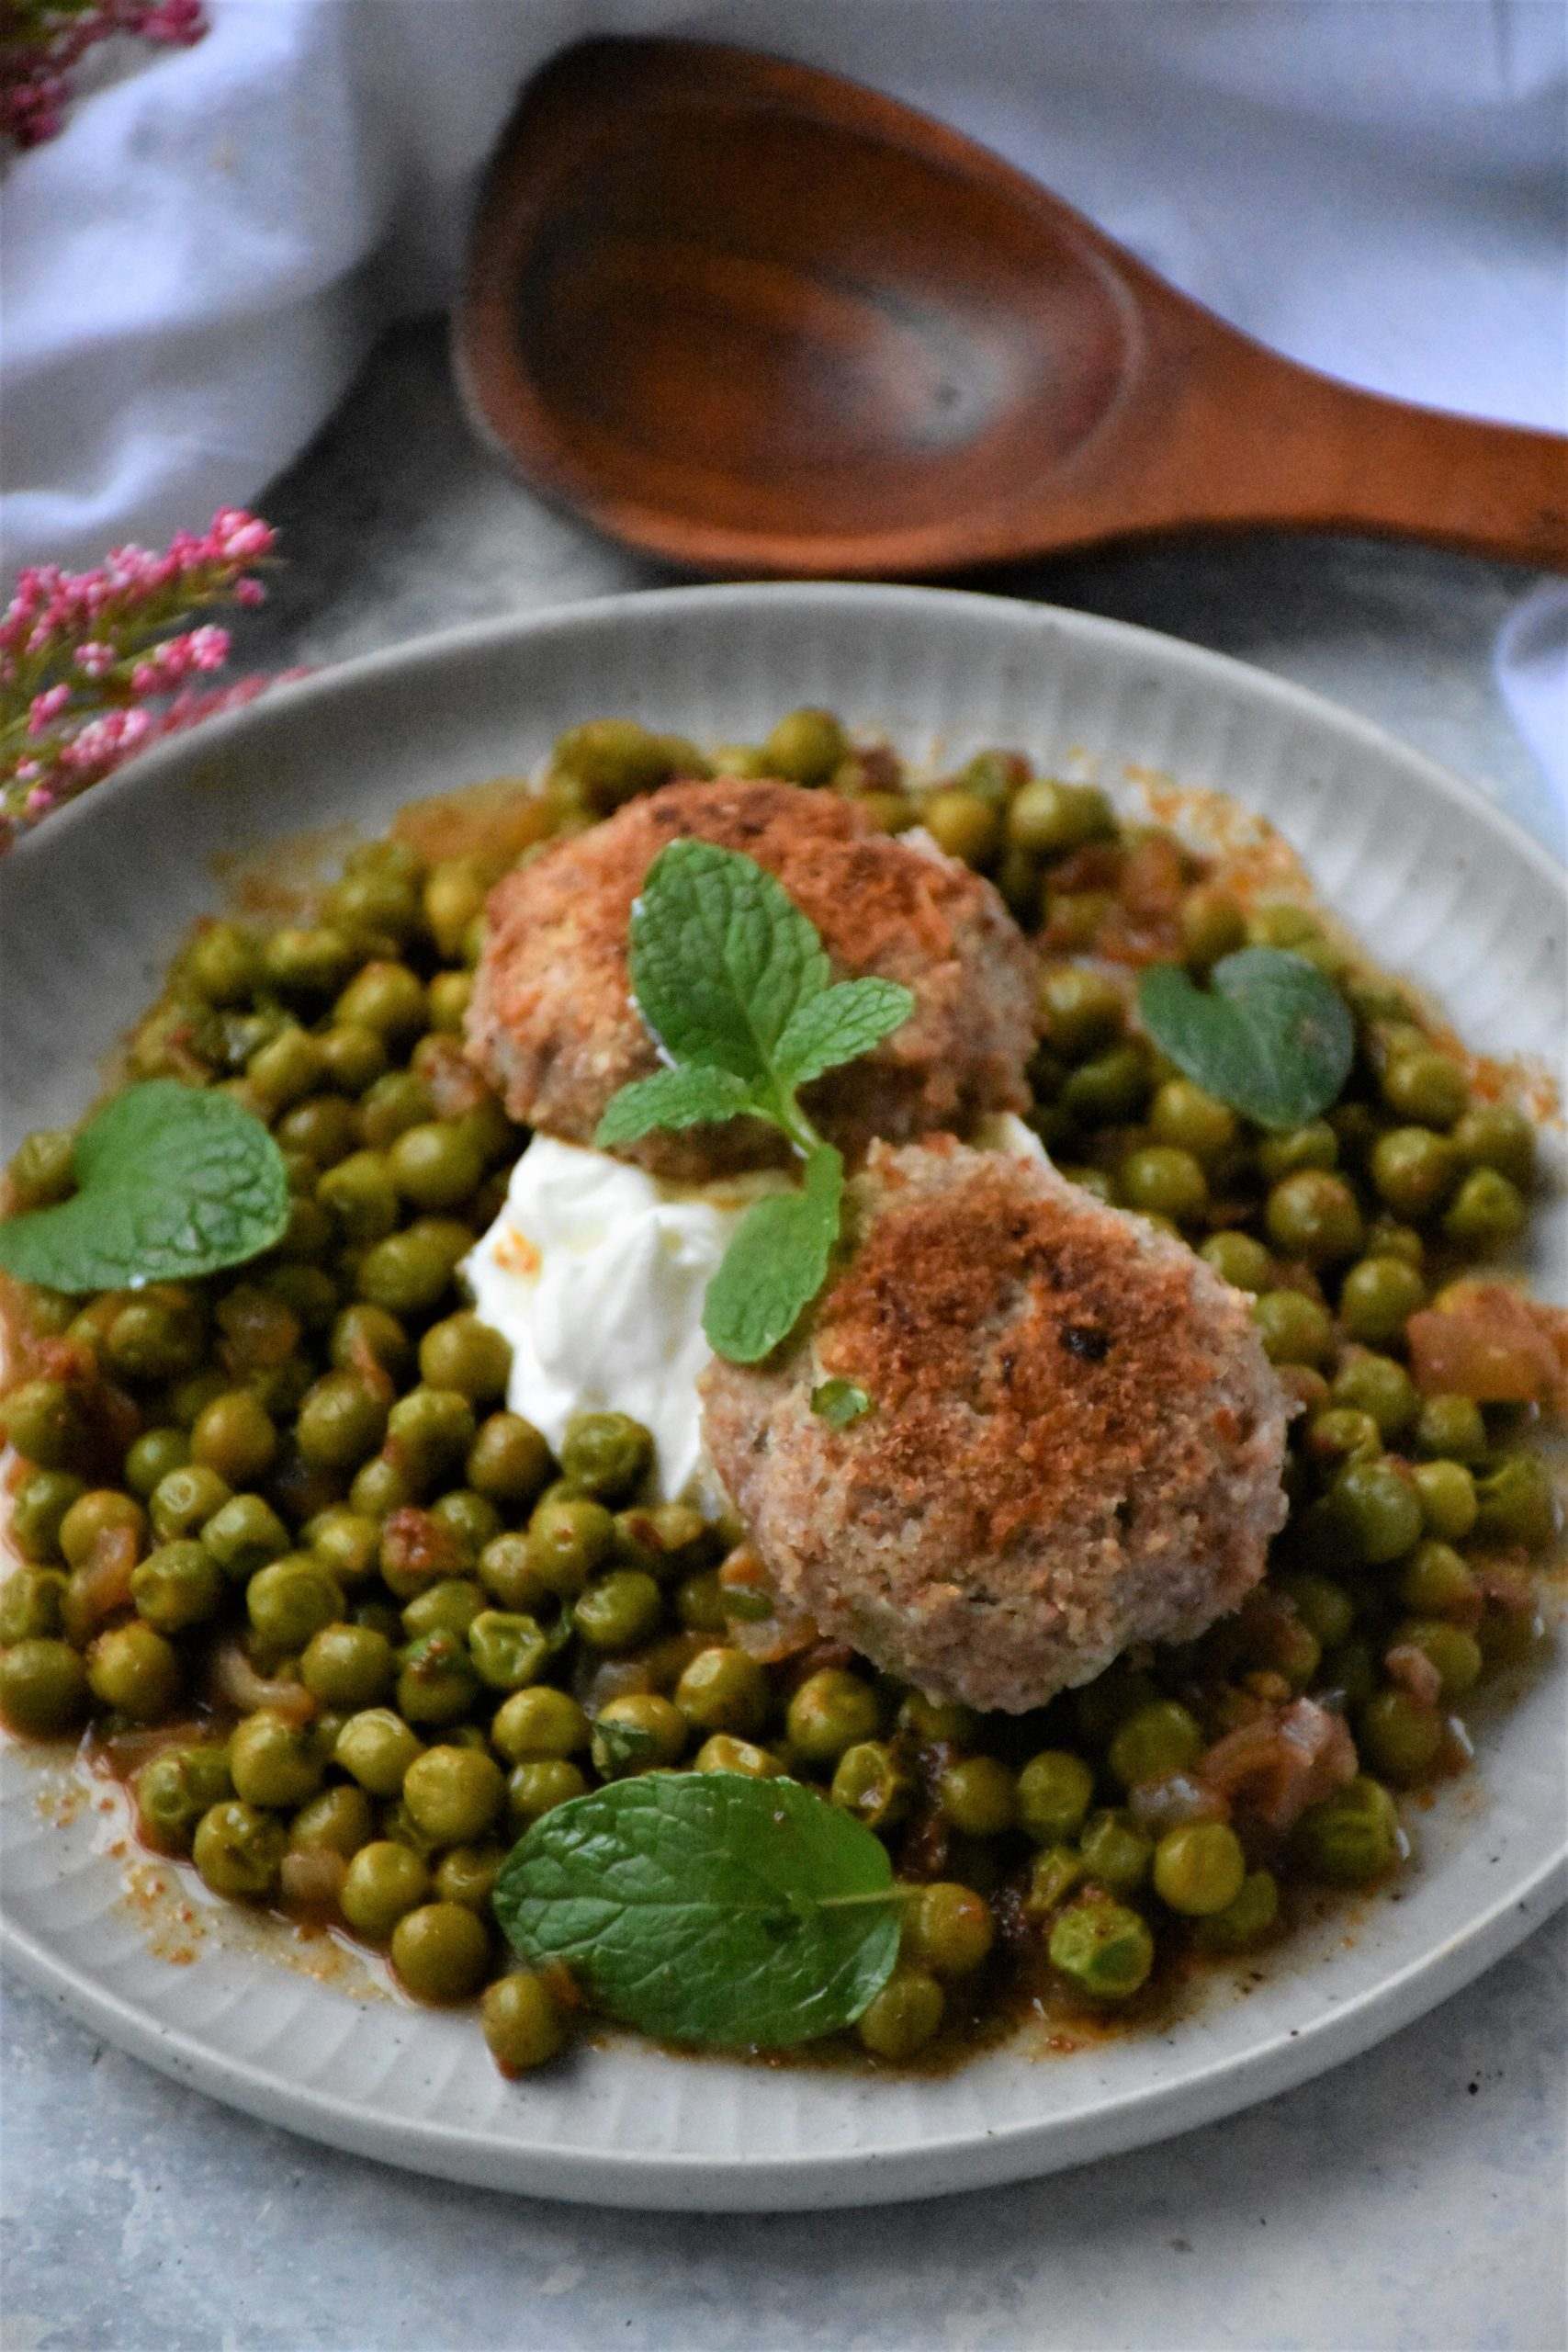 peas and meatballs on a plate